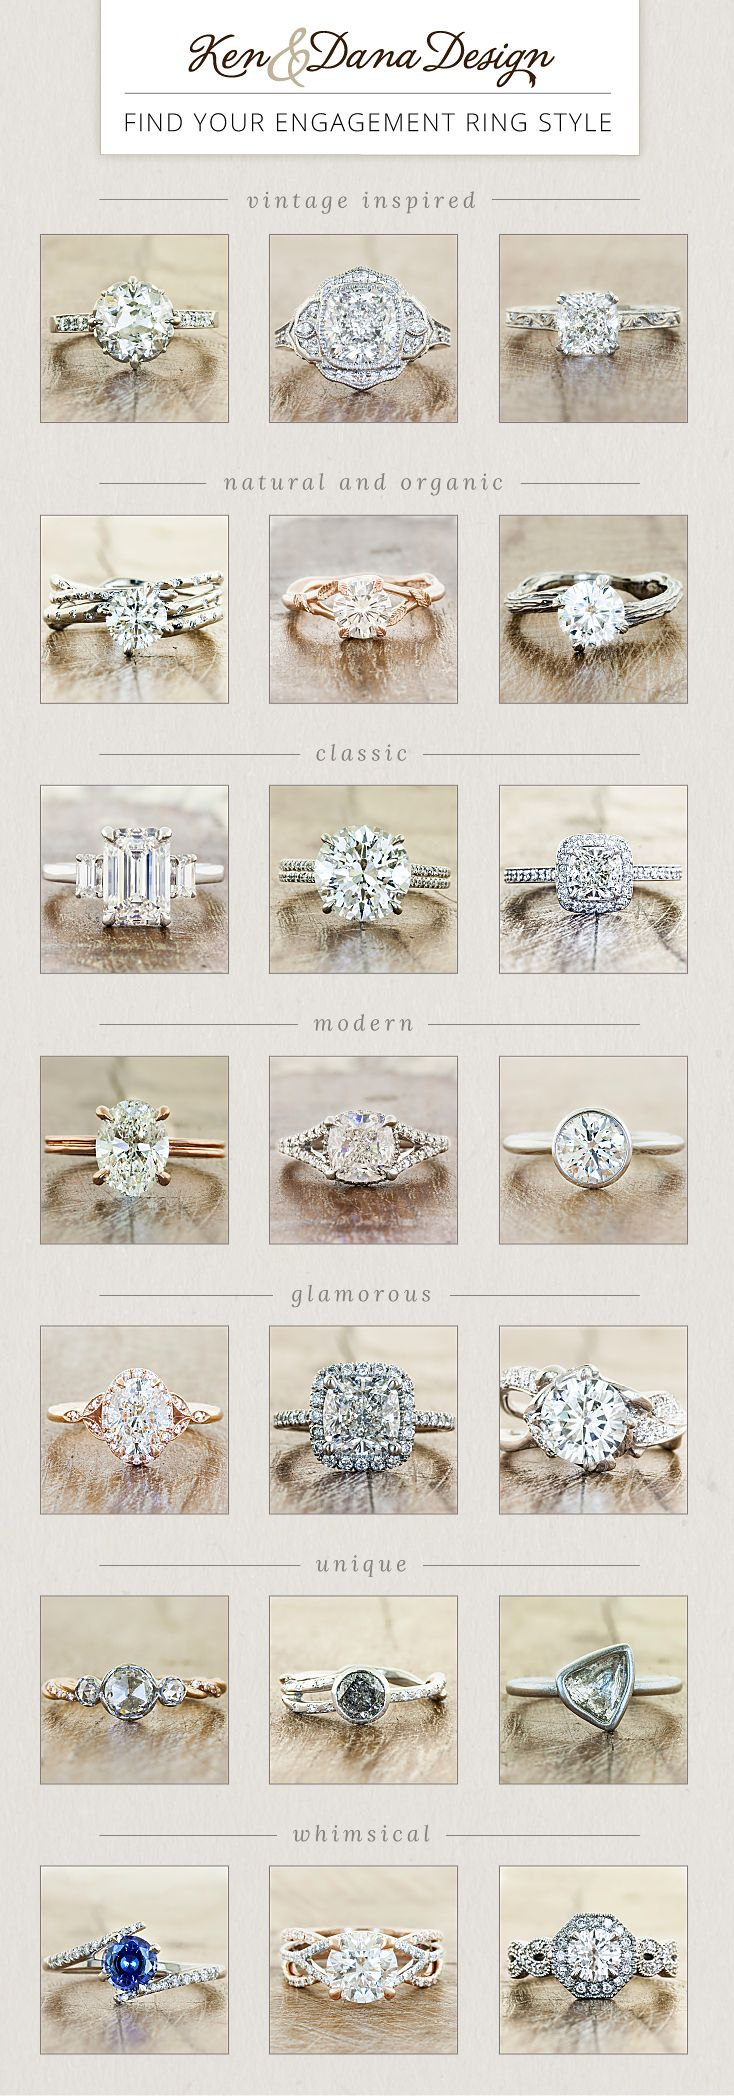 Find your engagement ring style whether nature inspired vintage